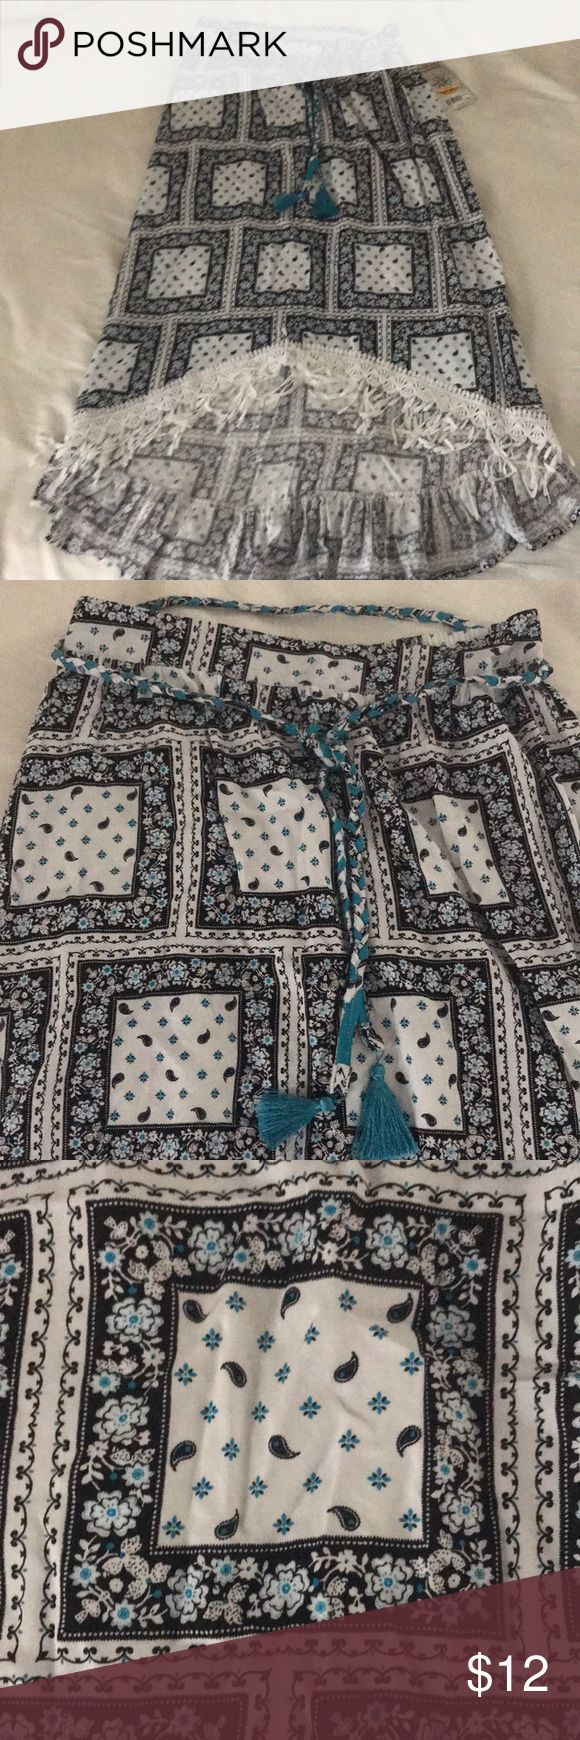 D signed high low skirt sz 10/12. NWT. D-signed high low skirt. Belt around waist with tassels on end. Ruffled bottom of skirt. NWT. White, black and turquoise. Disney Bottoms Skirts